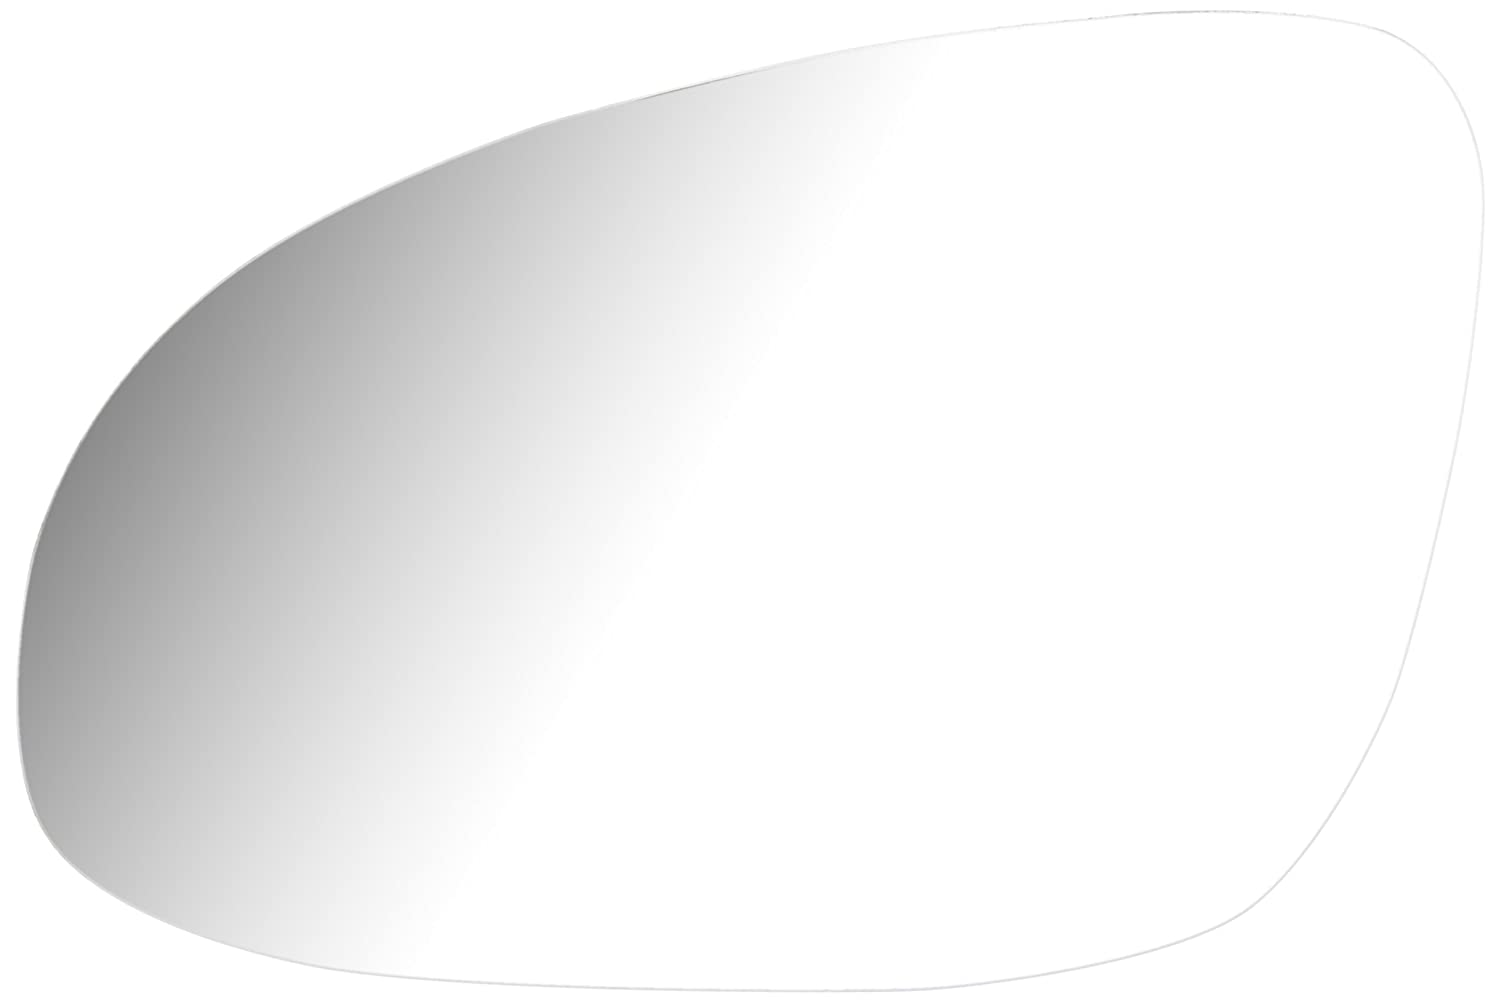 Cora 3391049 Left-Hand Wing Mirror with Fastening Plate, Chrome Finish CO.RA. SPA